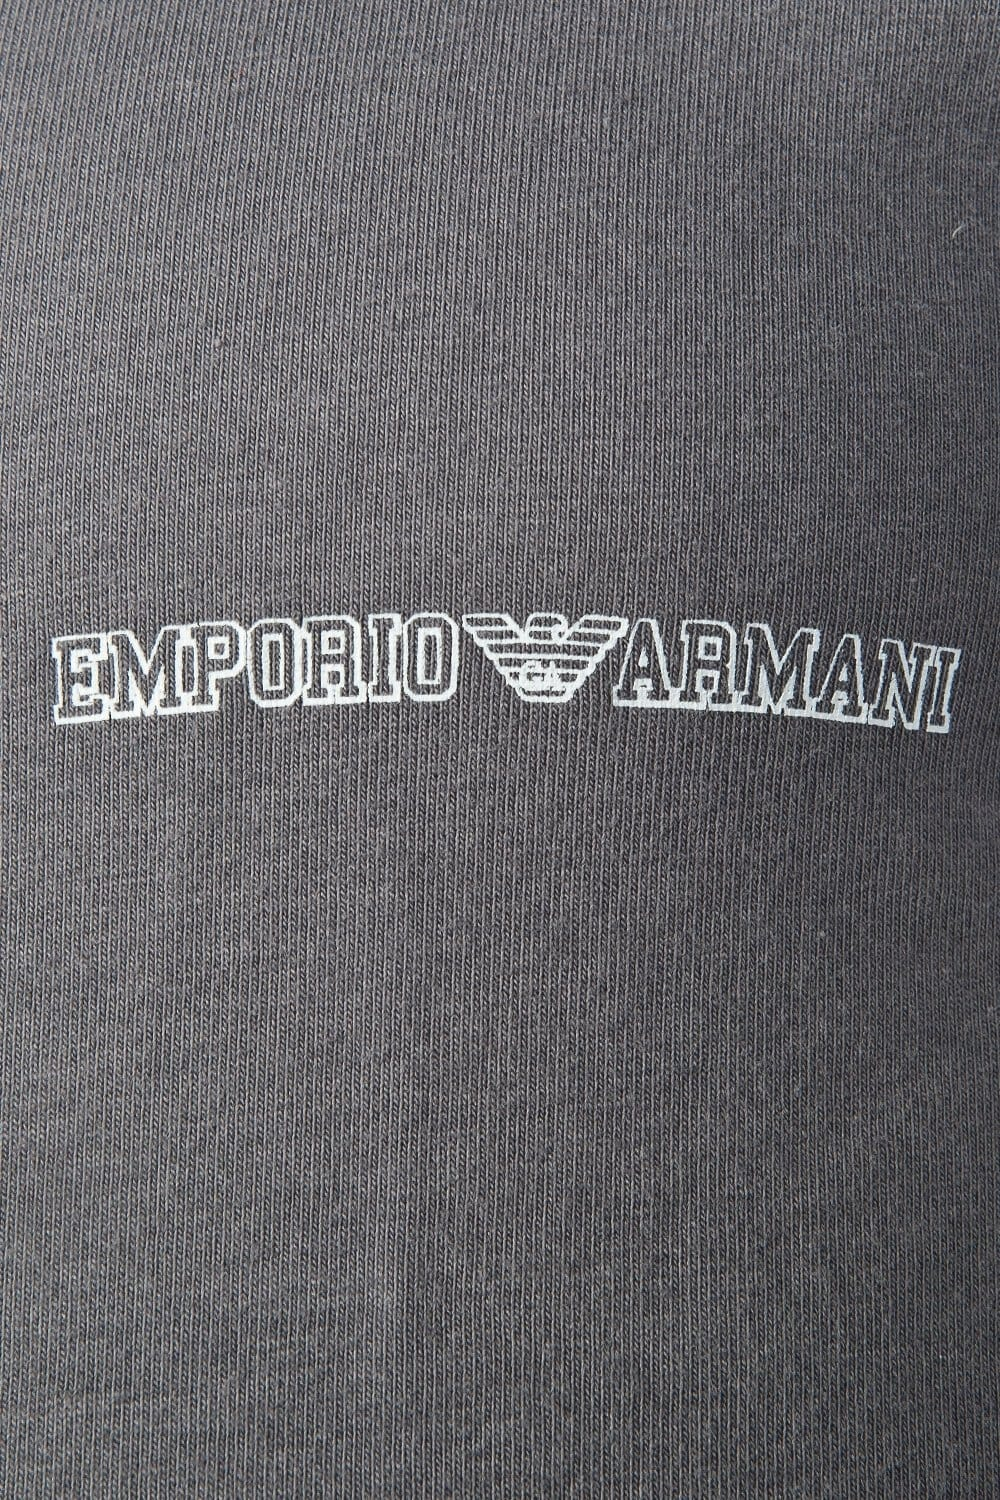 e22ea87935d47 Emporio Armani Fitted Underwear T-shirt in Red and Charcoal Grey 1110355P725